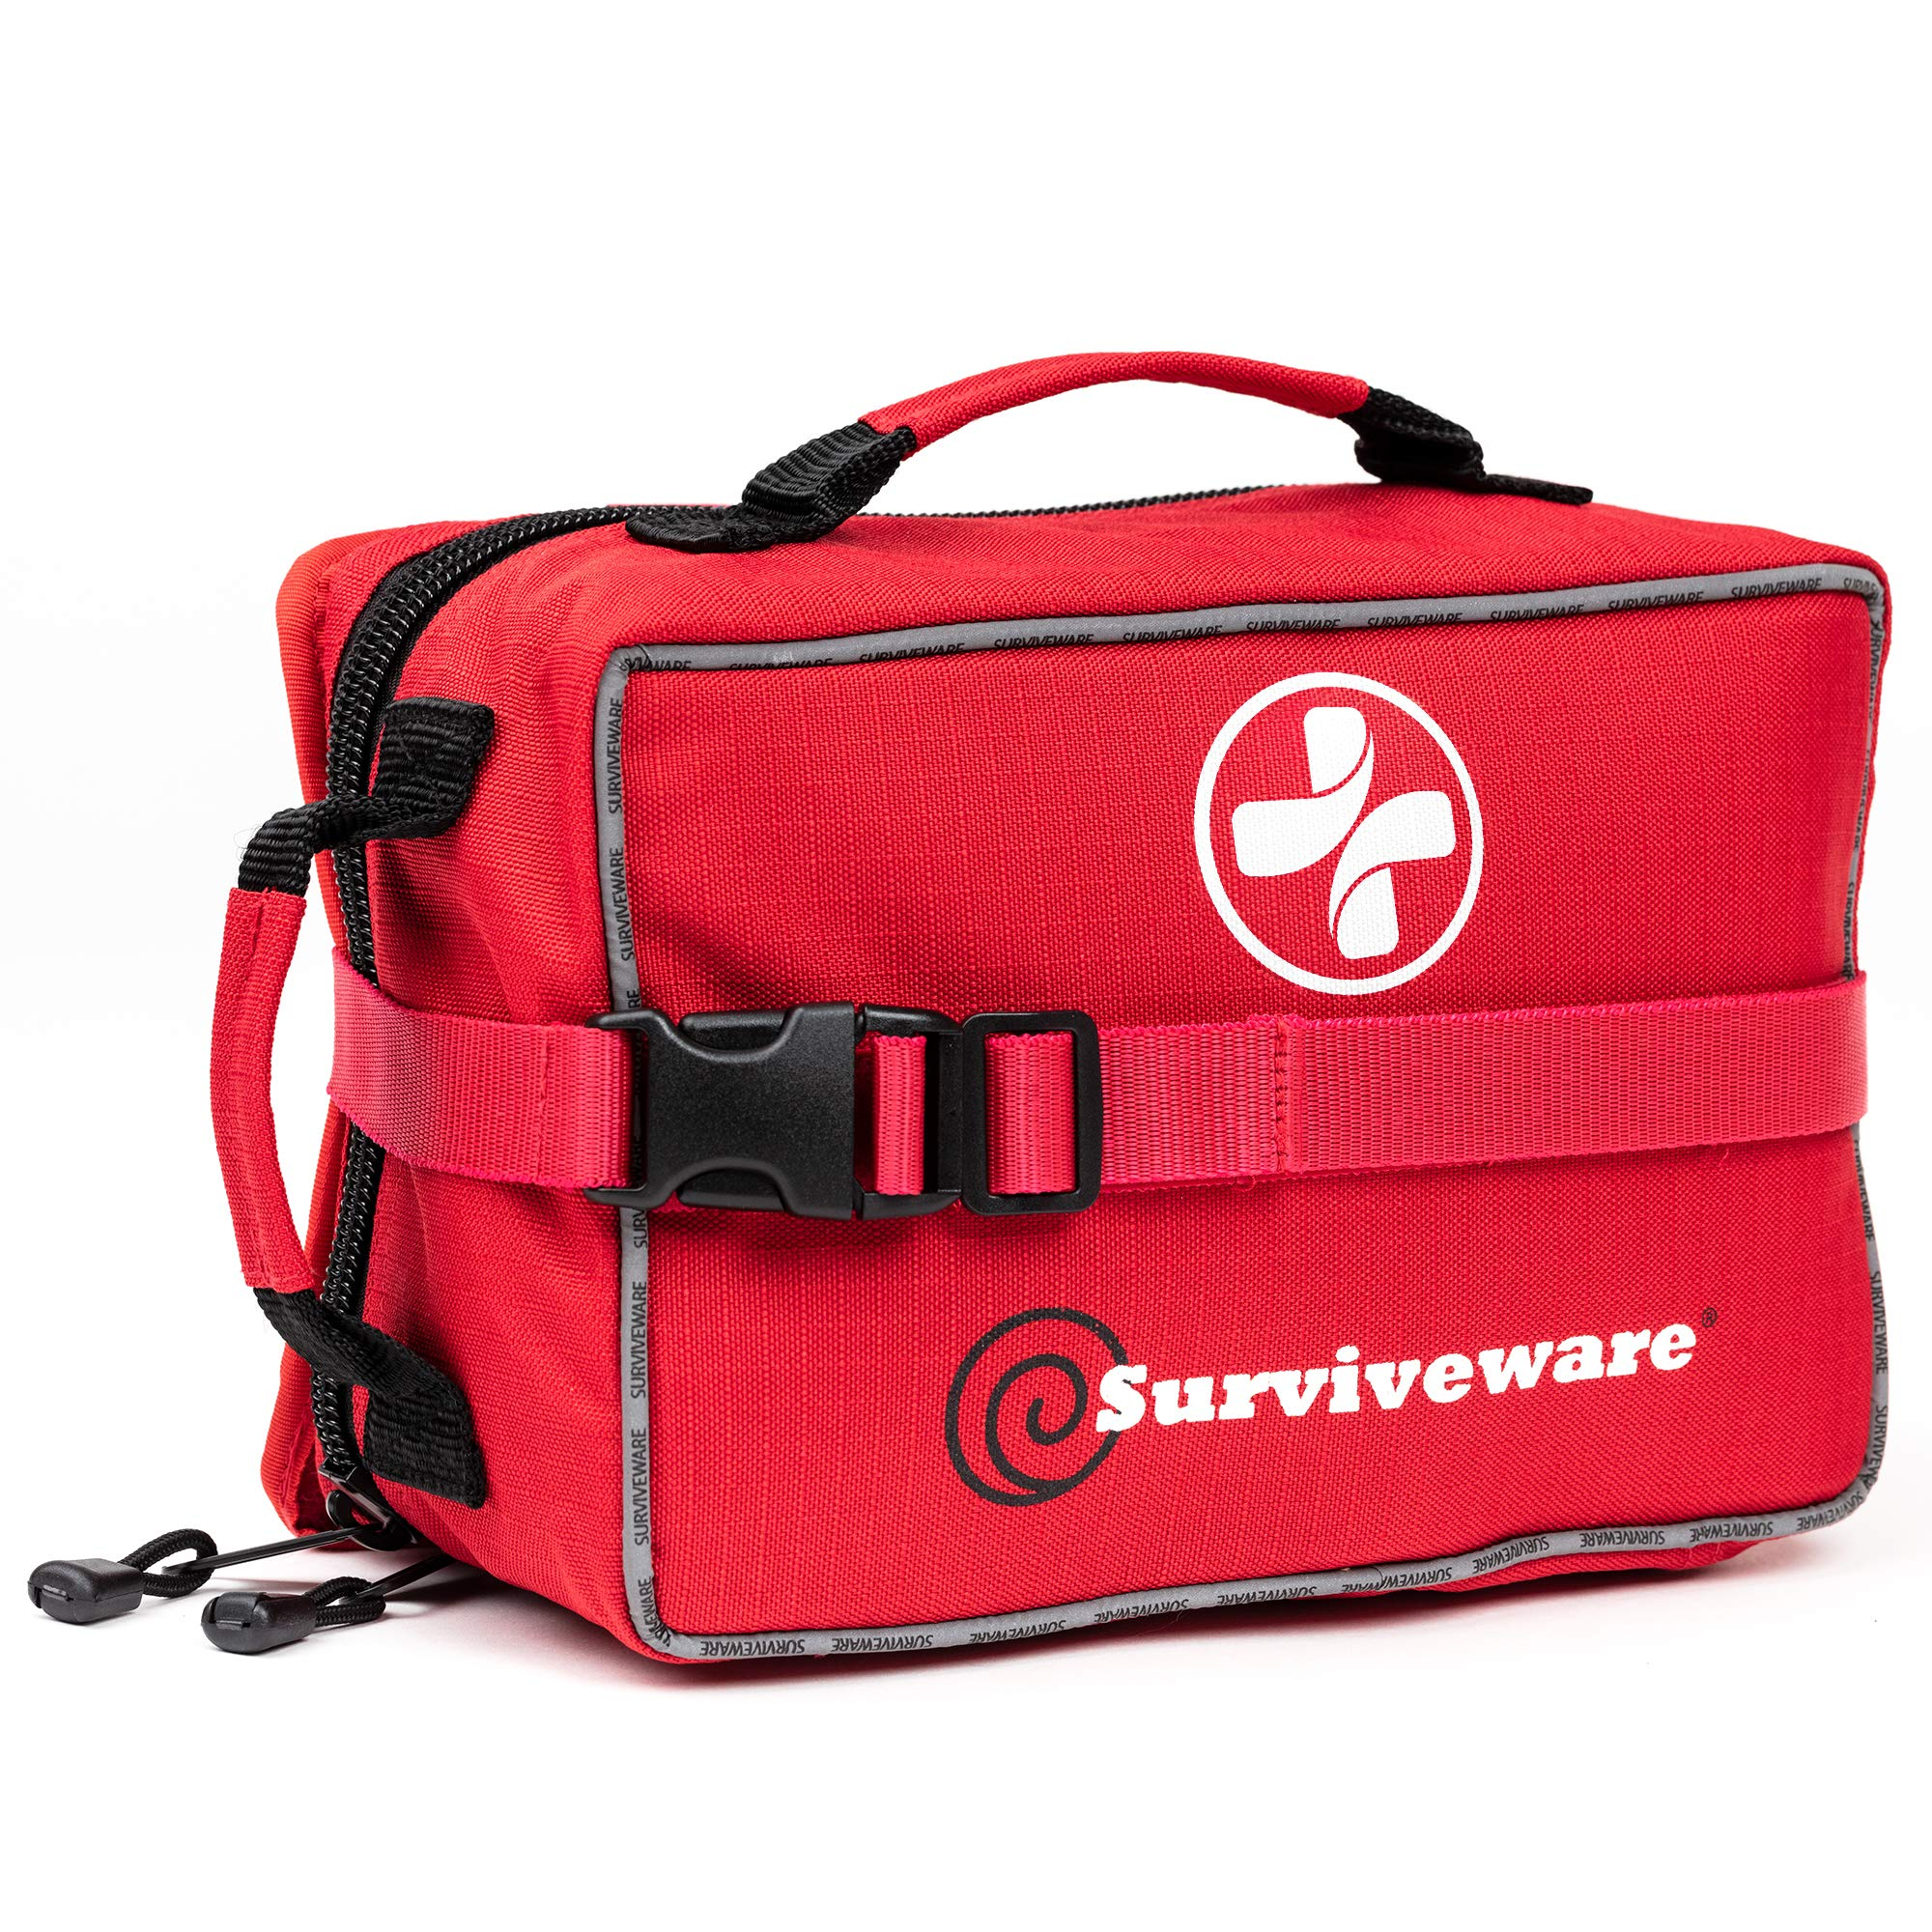 Surviveware Large First Aid Kit & Added Mini Kit by Surviveware